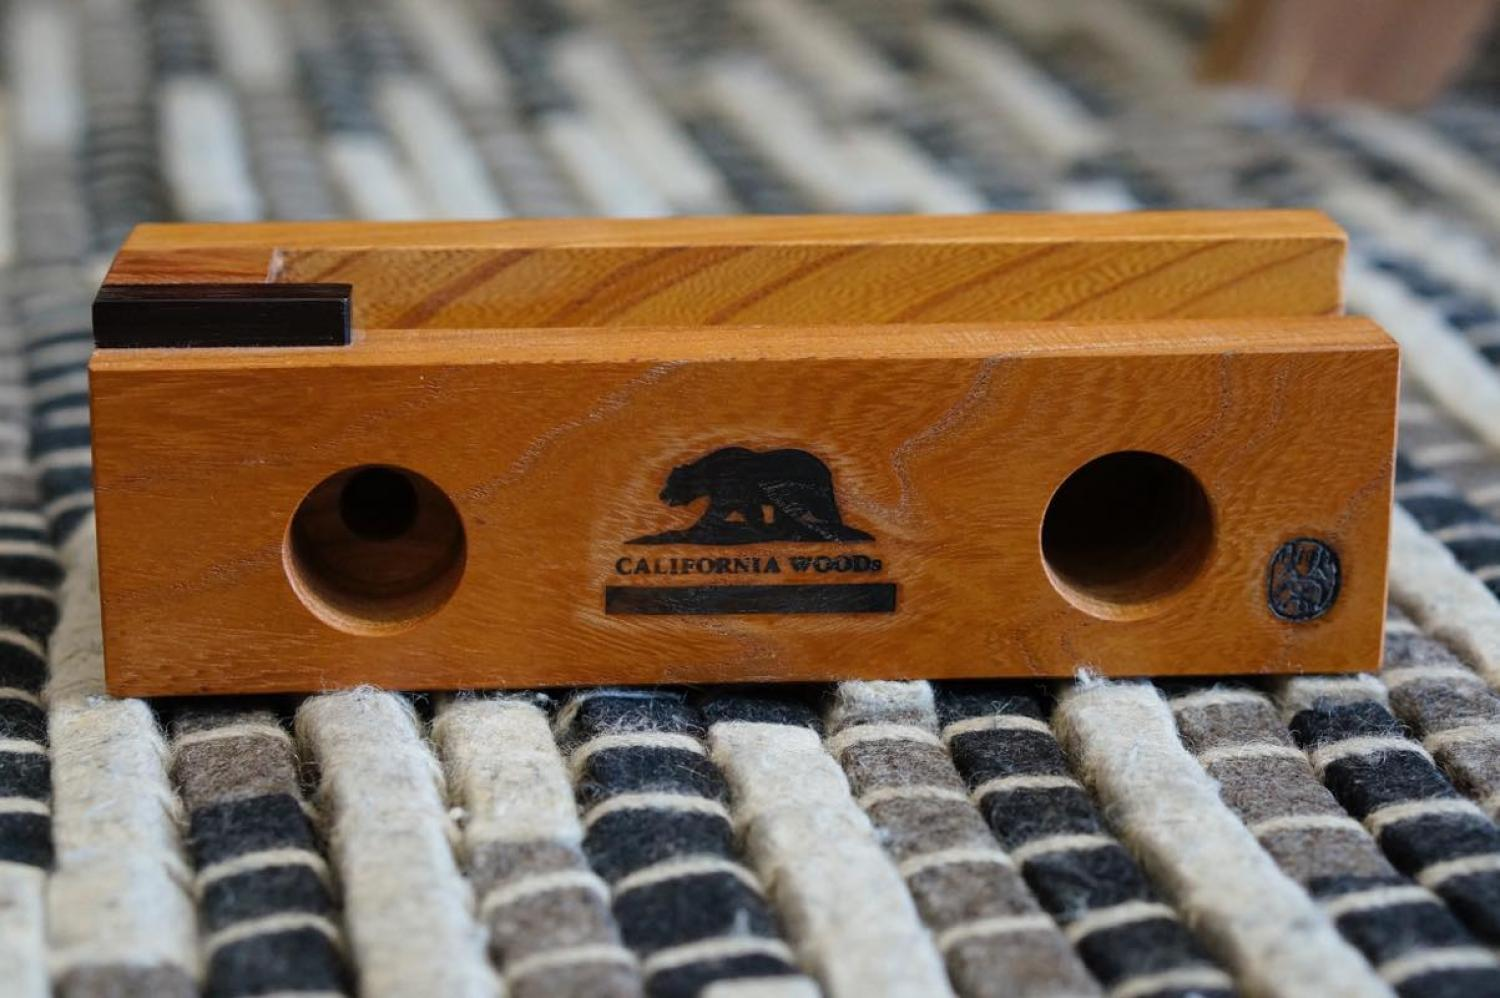 「California woods」Eco speaker